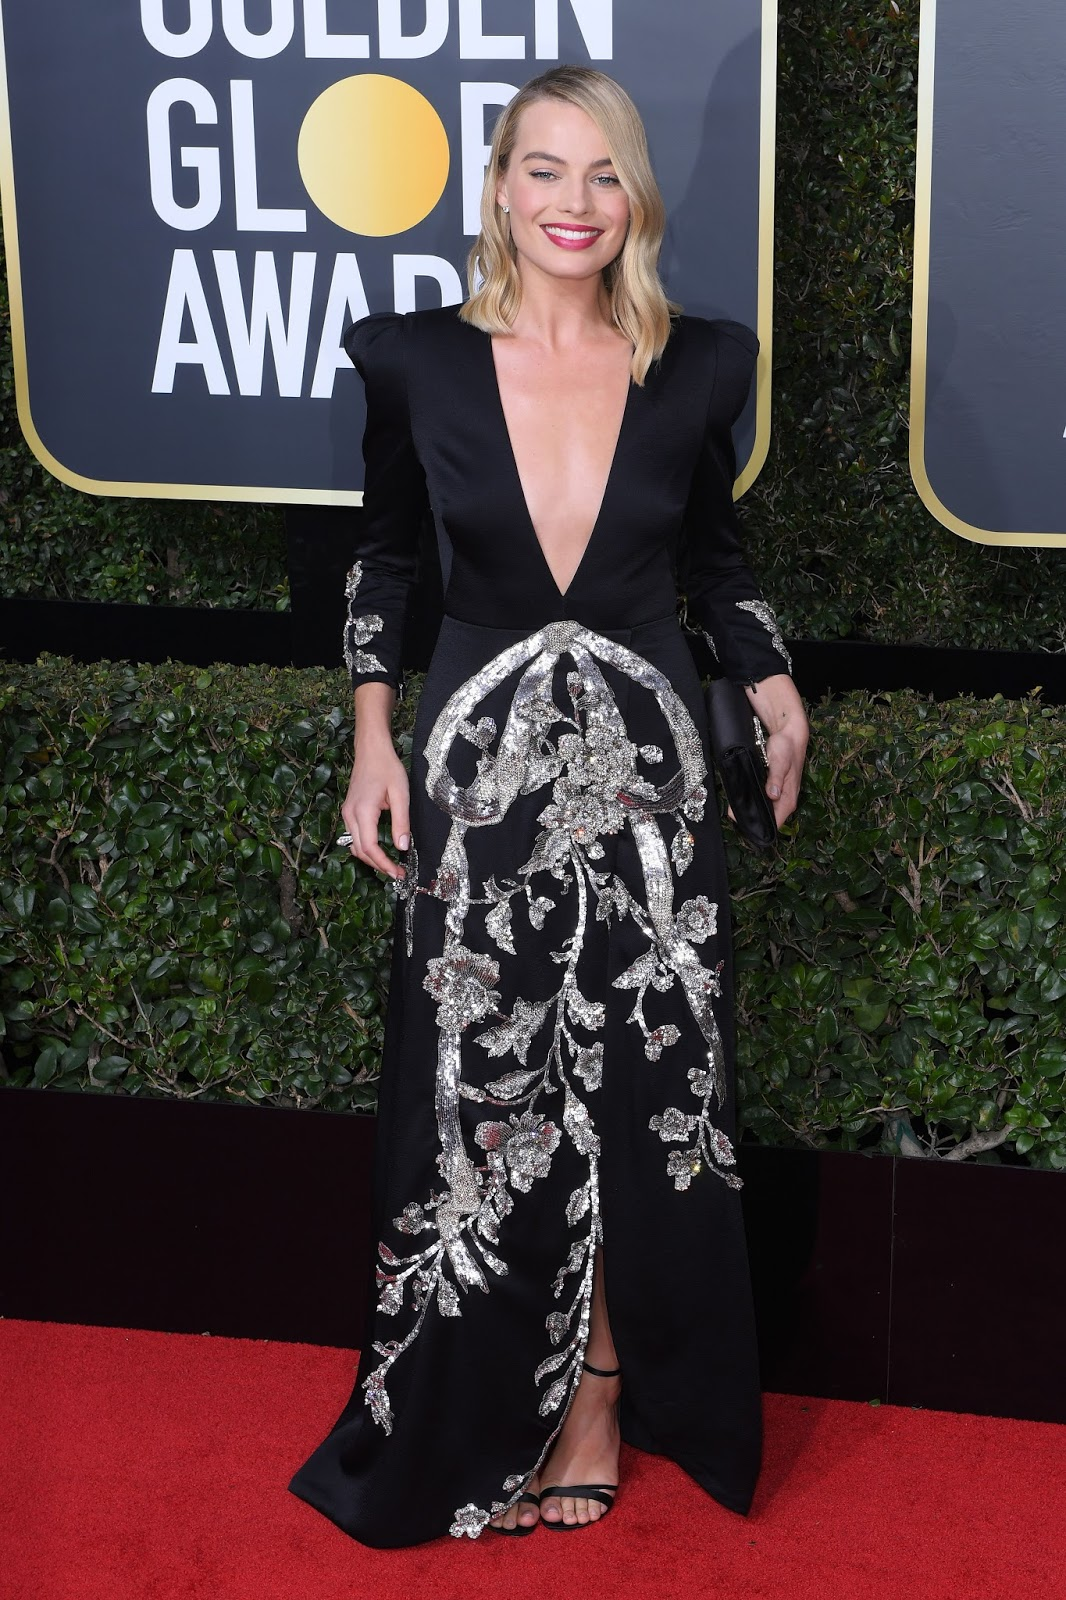 Margot Robbie on the Red Carpet at Golden Globe Awards